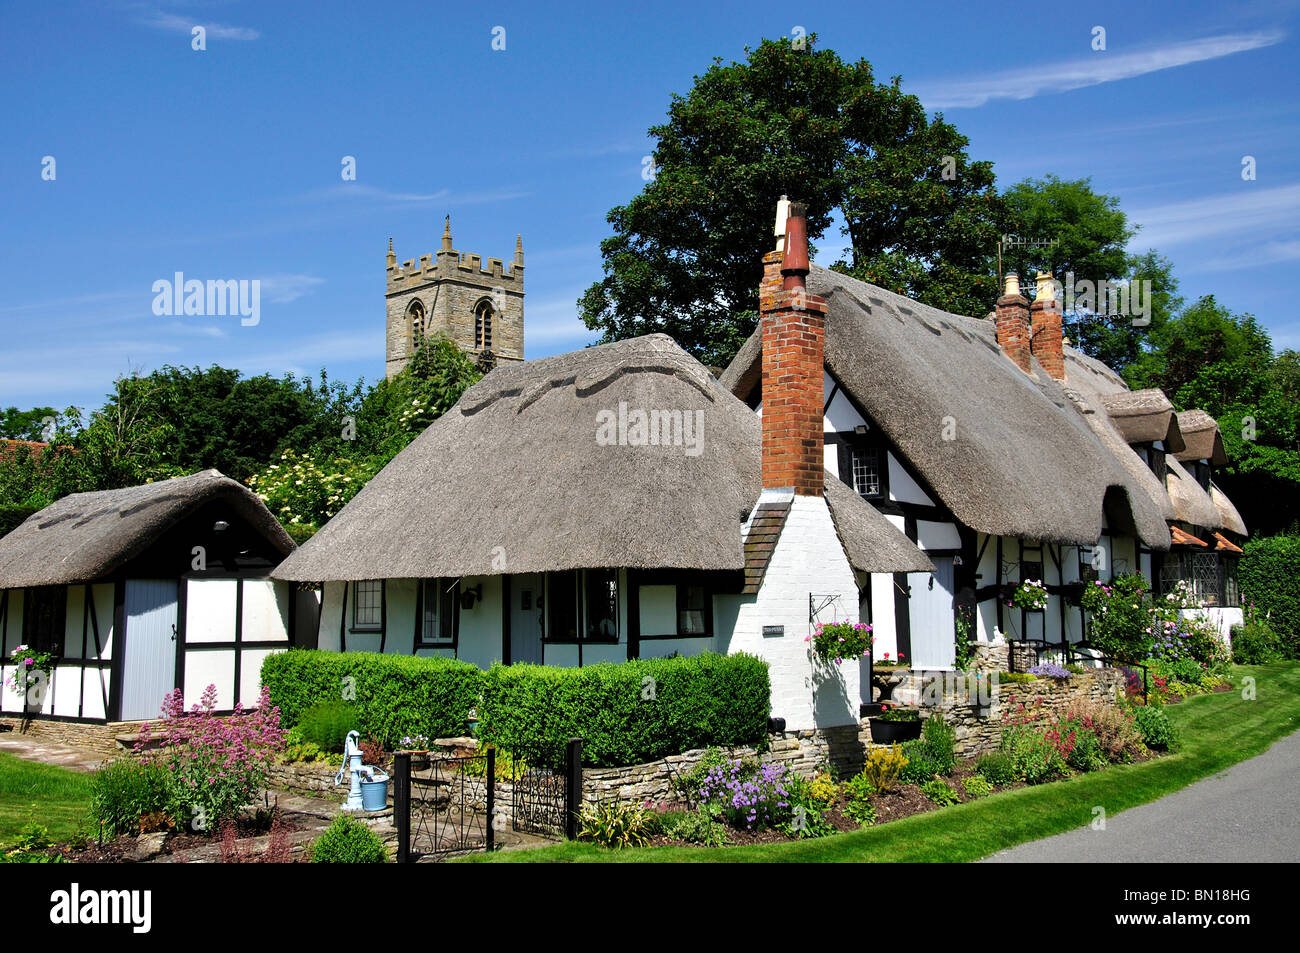 Thatched cottages and Church tower, Welford-on-Avon, Warwickshire, England, United Kingdom - Stock Image